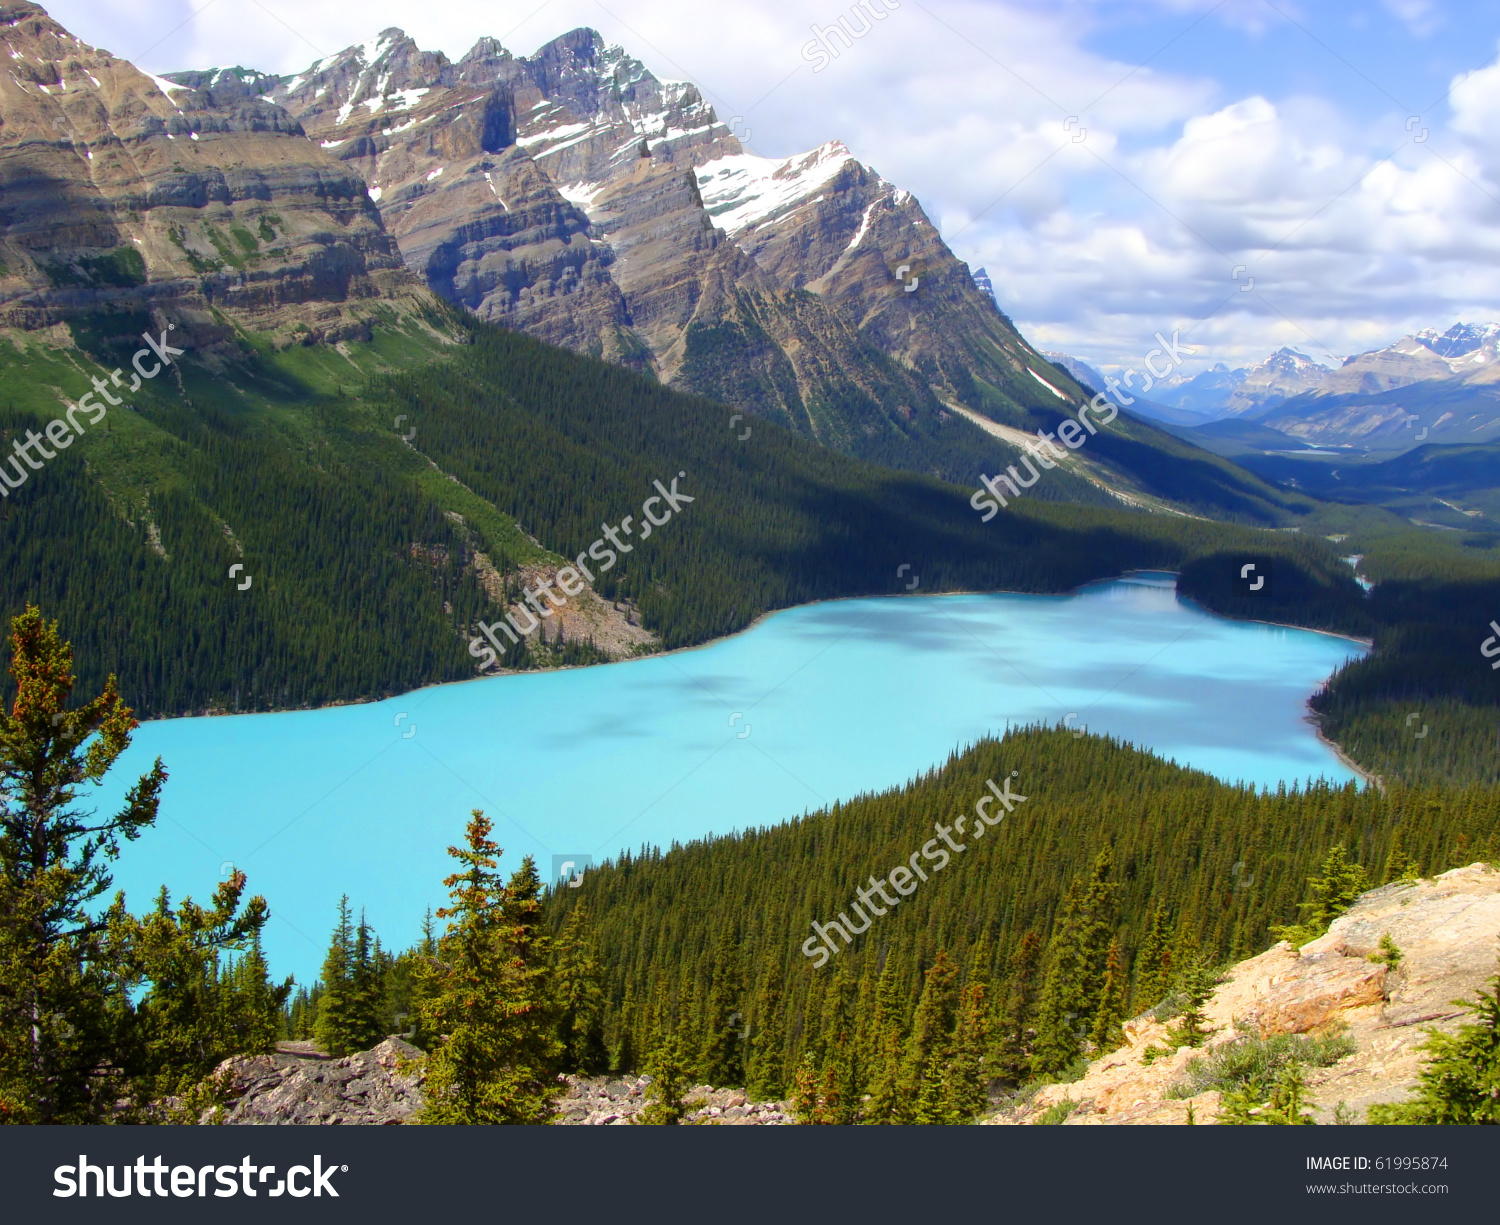 Aerial View Of Peyto Lake, Banff National Park, Canada Stock Photo.